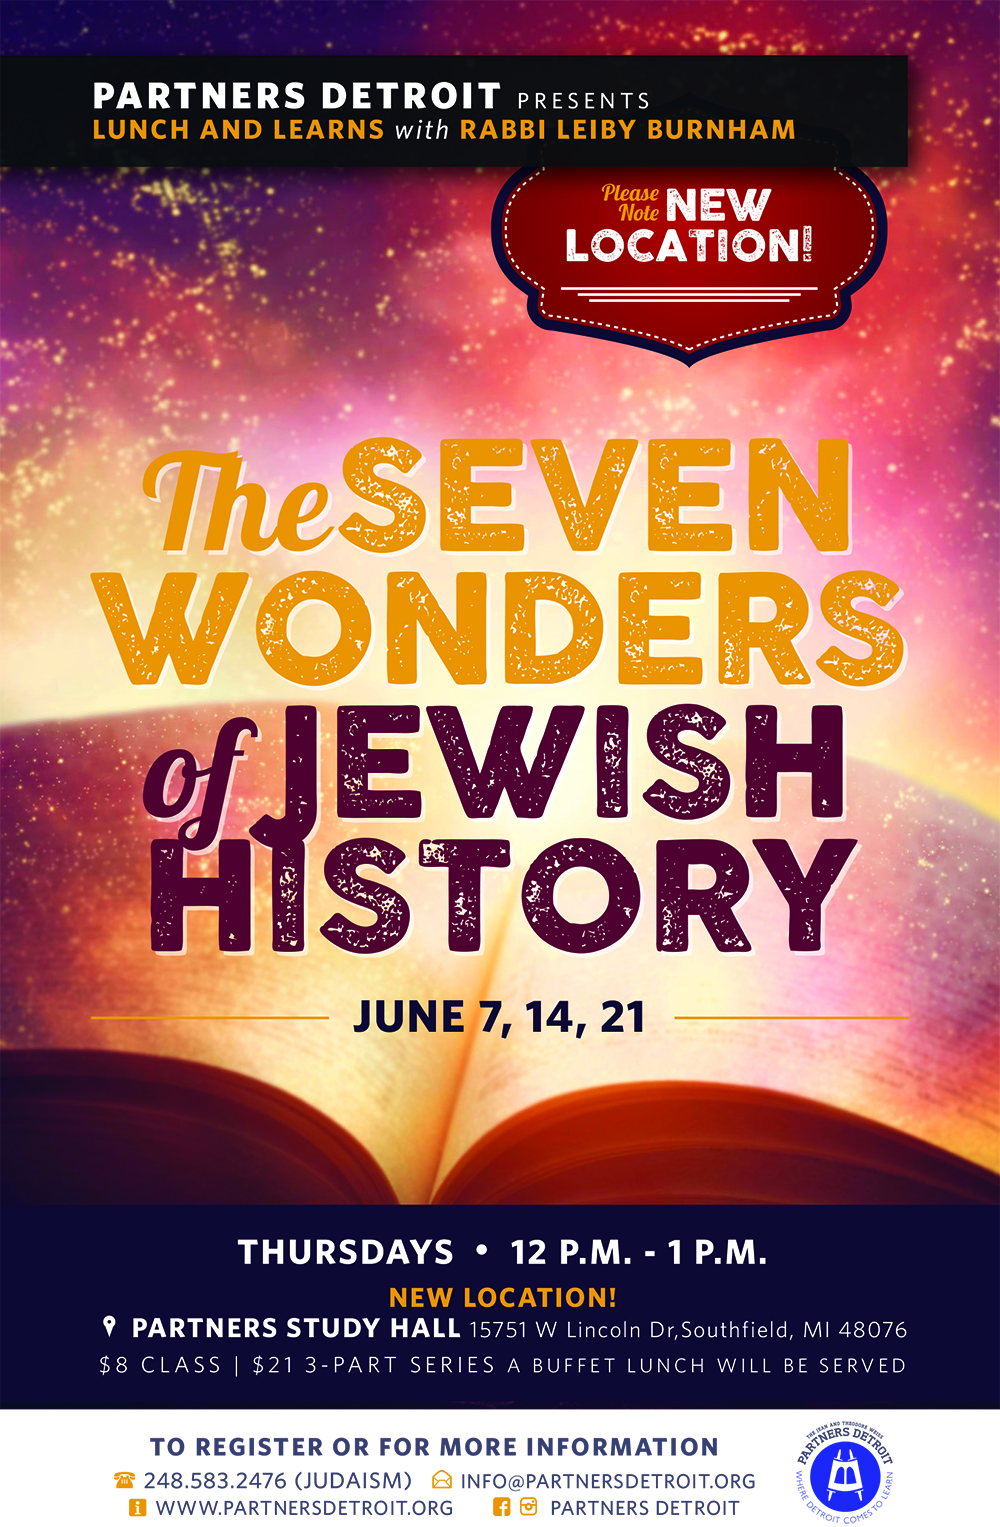 The Seven Wonders of Jewish History Lunch 'n Learn